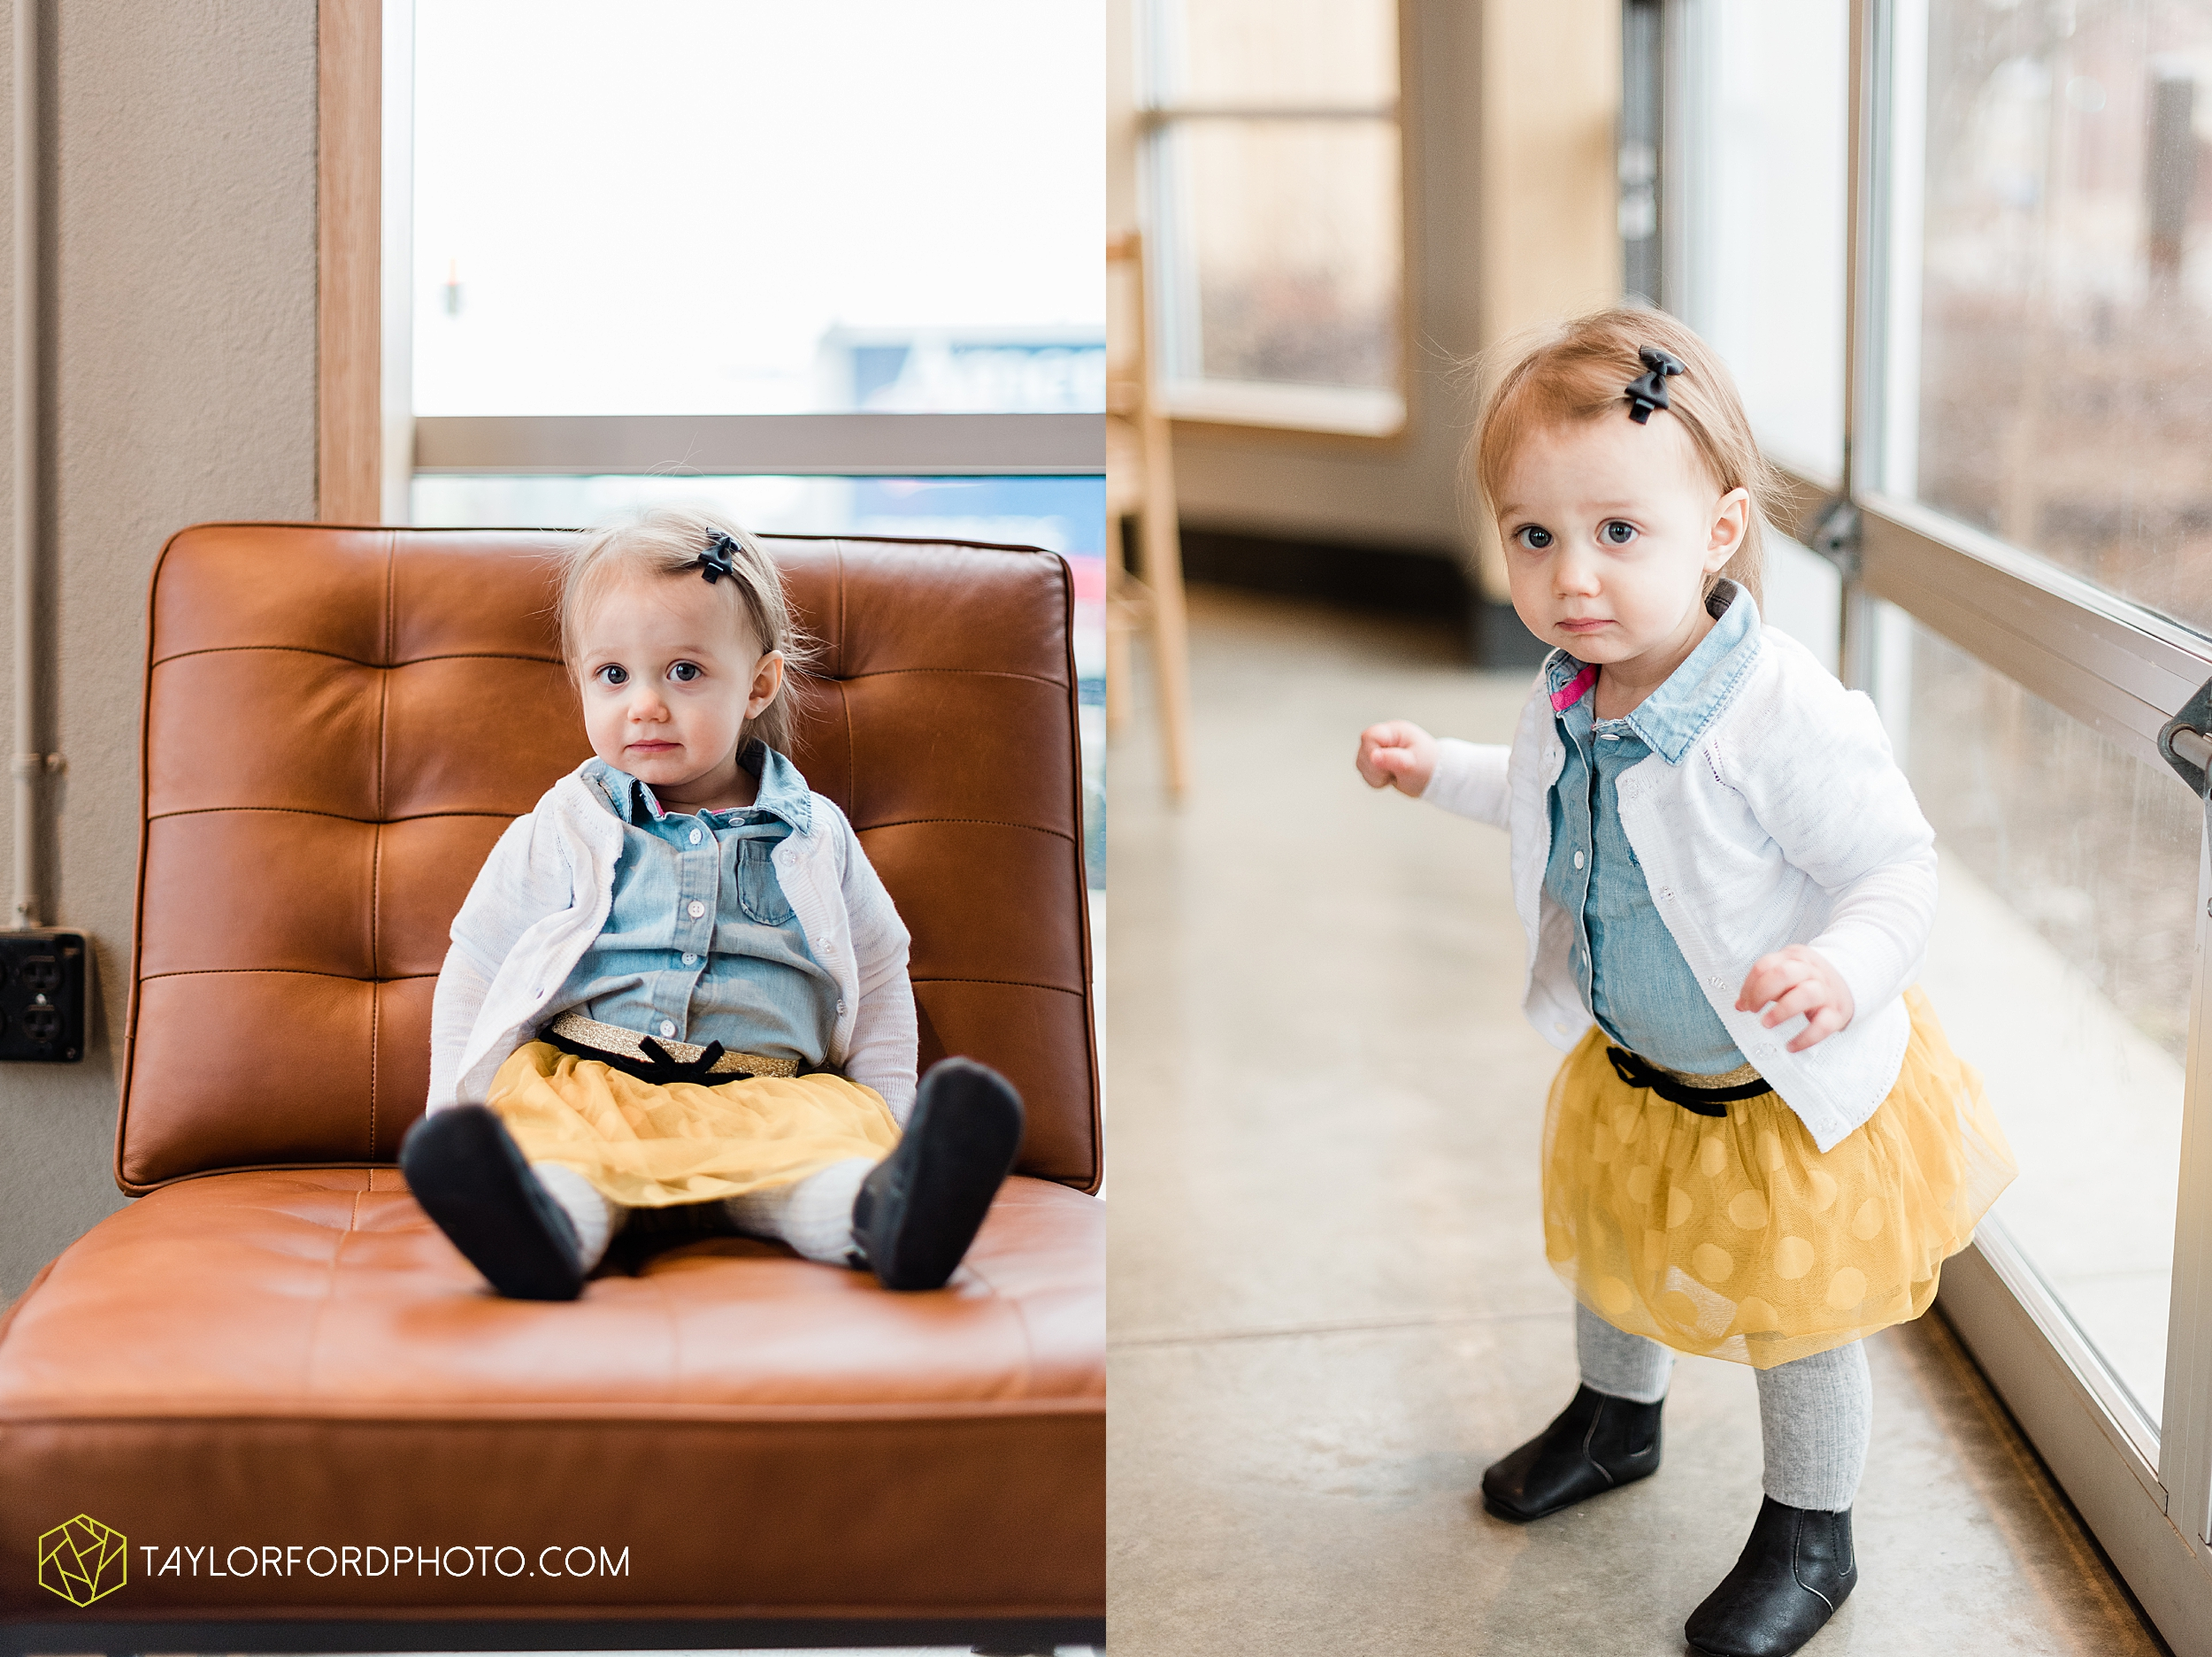 starbucks-one-1-year-old-brita-downtown-grand-wayne-at-home-family-fort-wayne-indiana-photography-taylor-ford-hirschy-photographer_2392.jpg